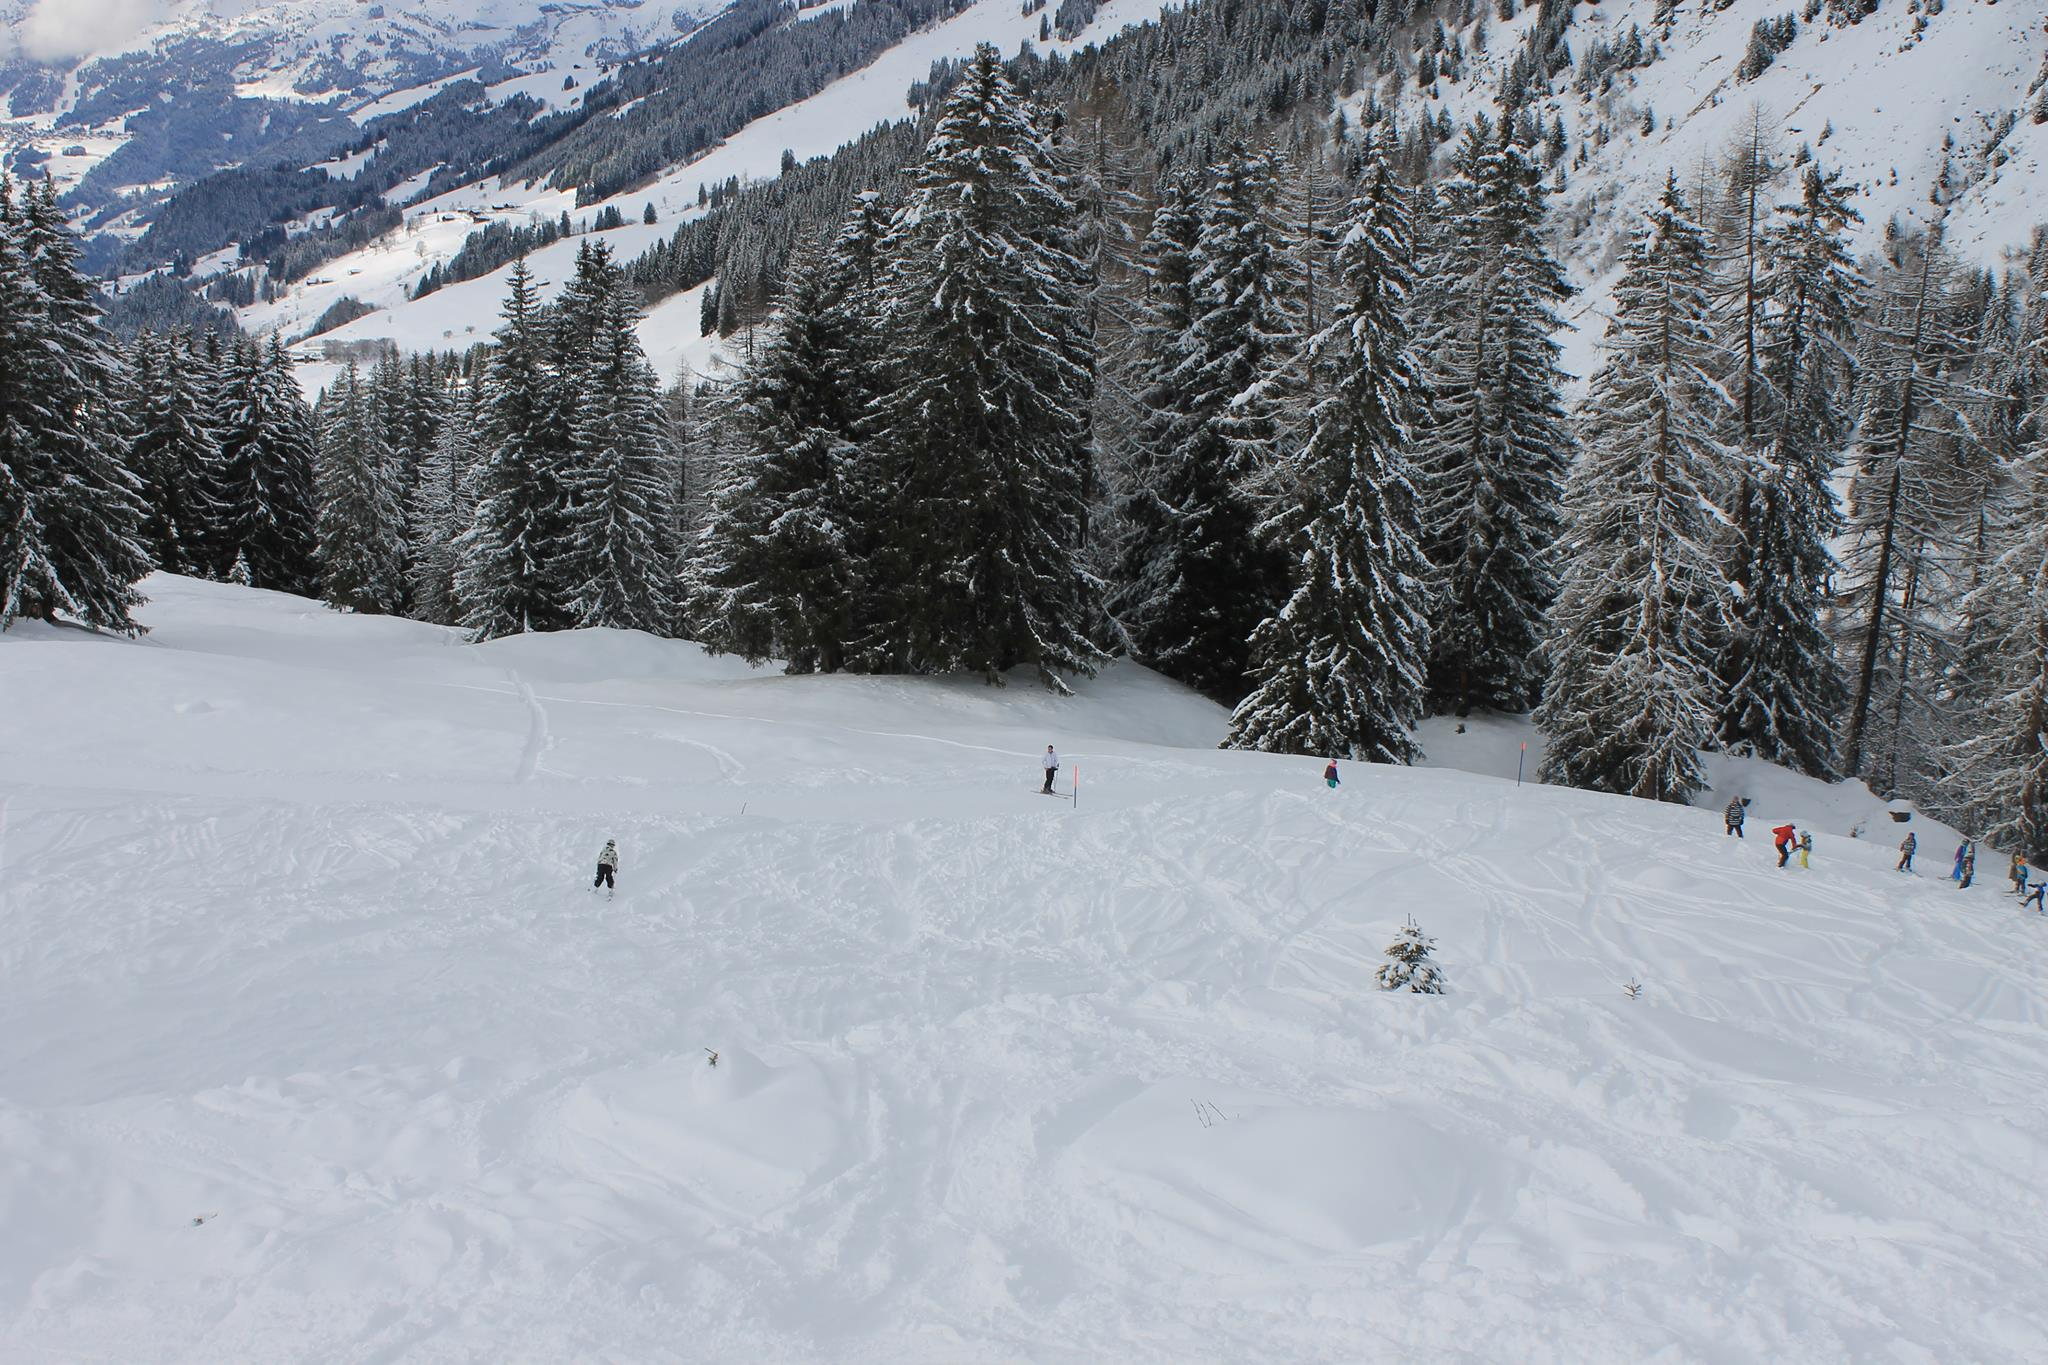 Skiing on Meilleret